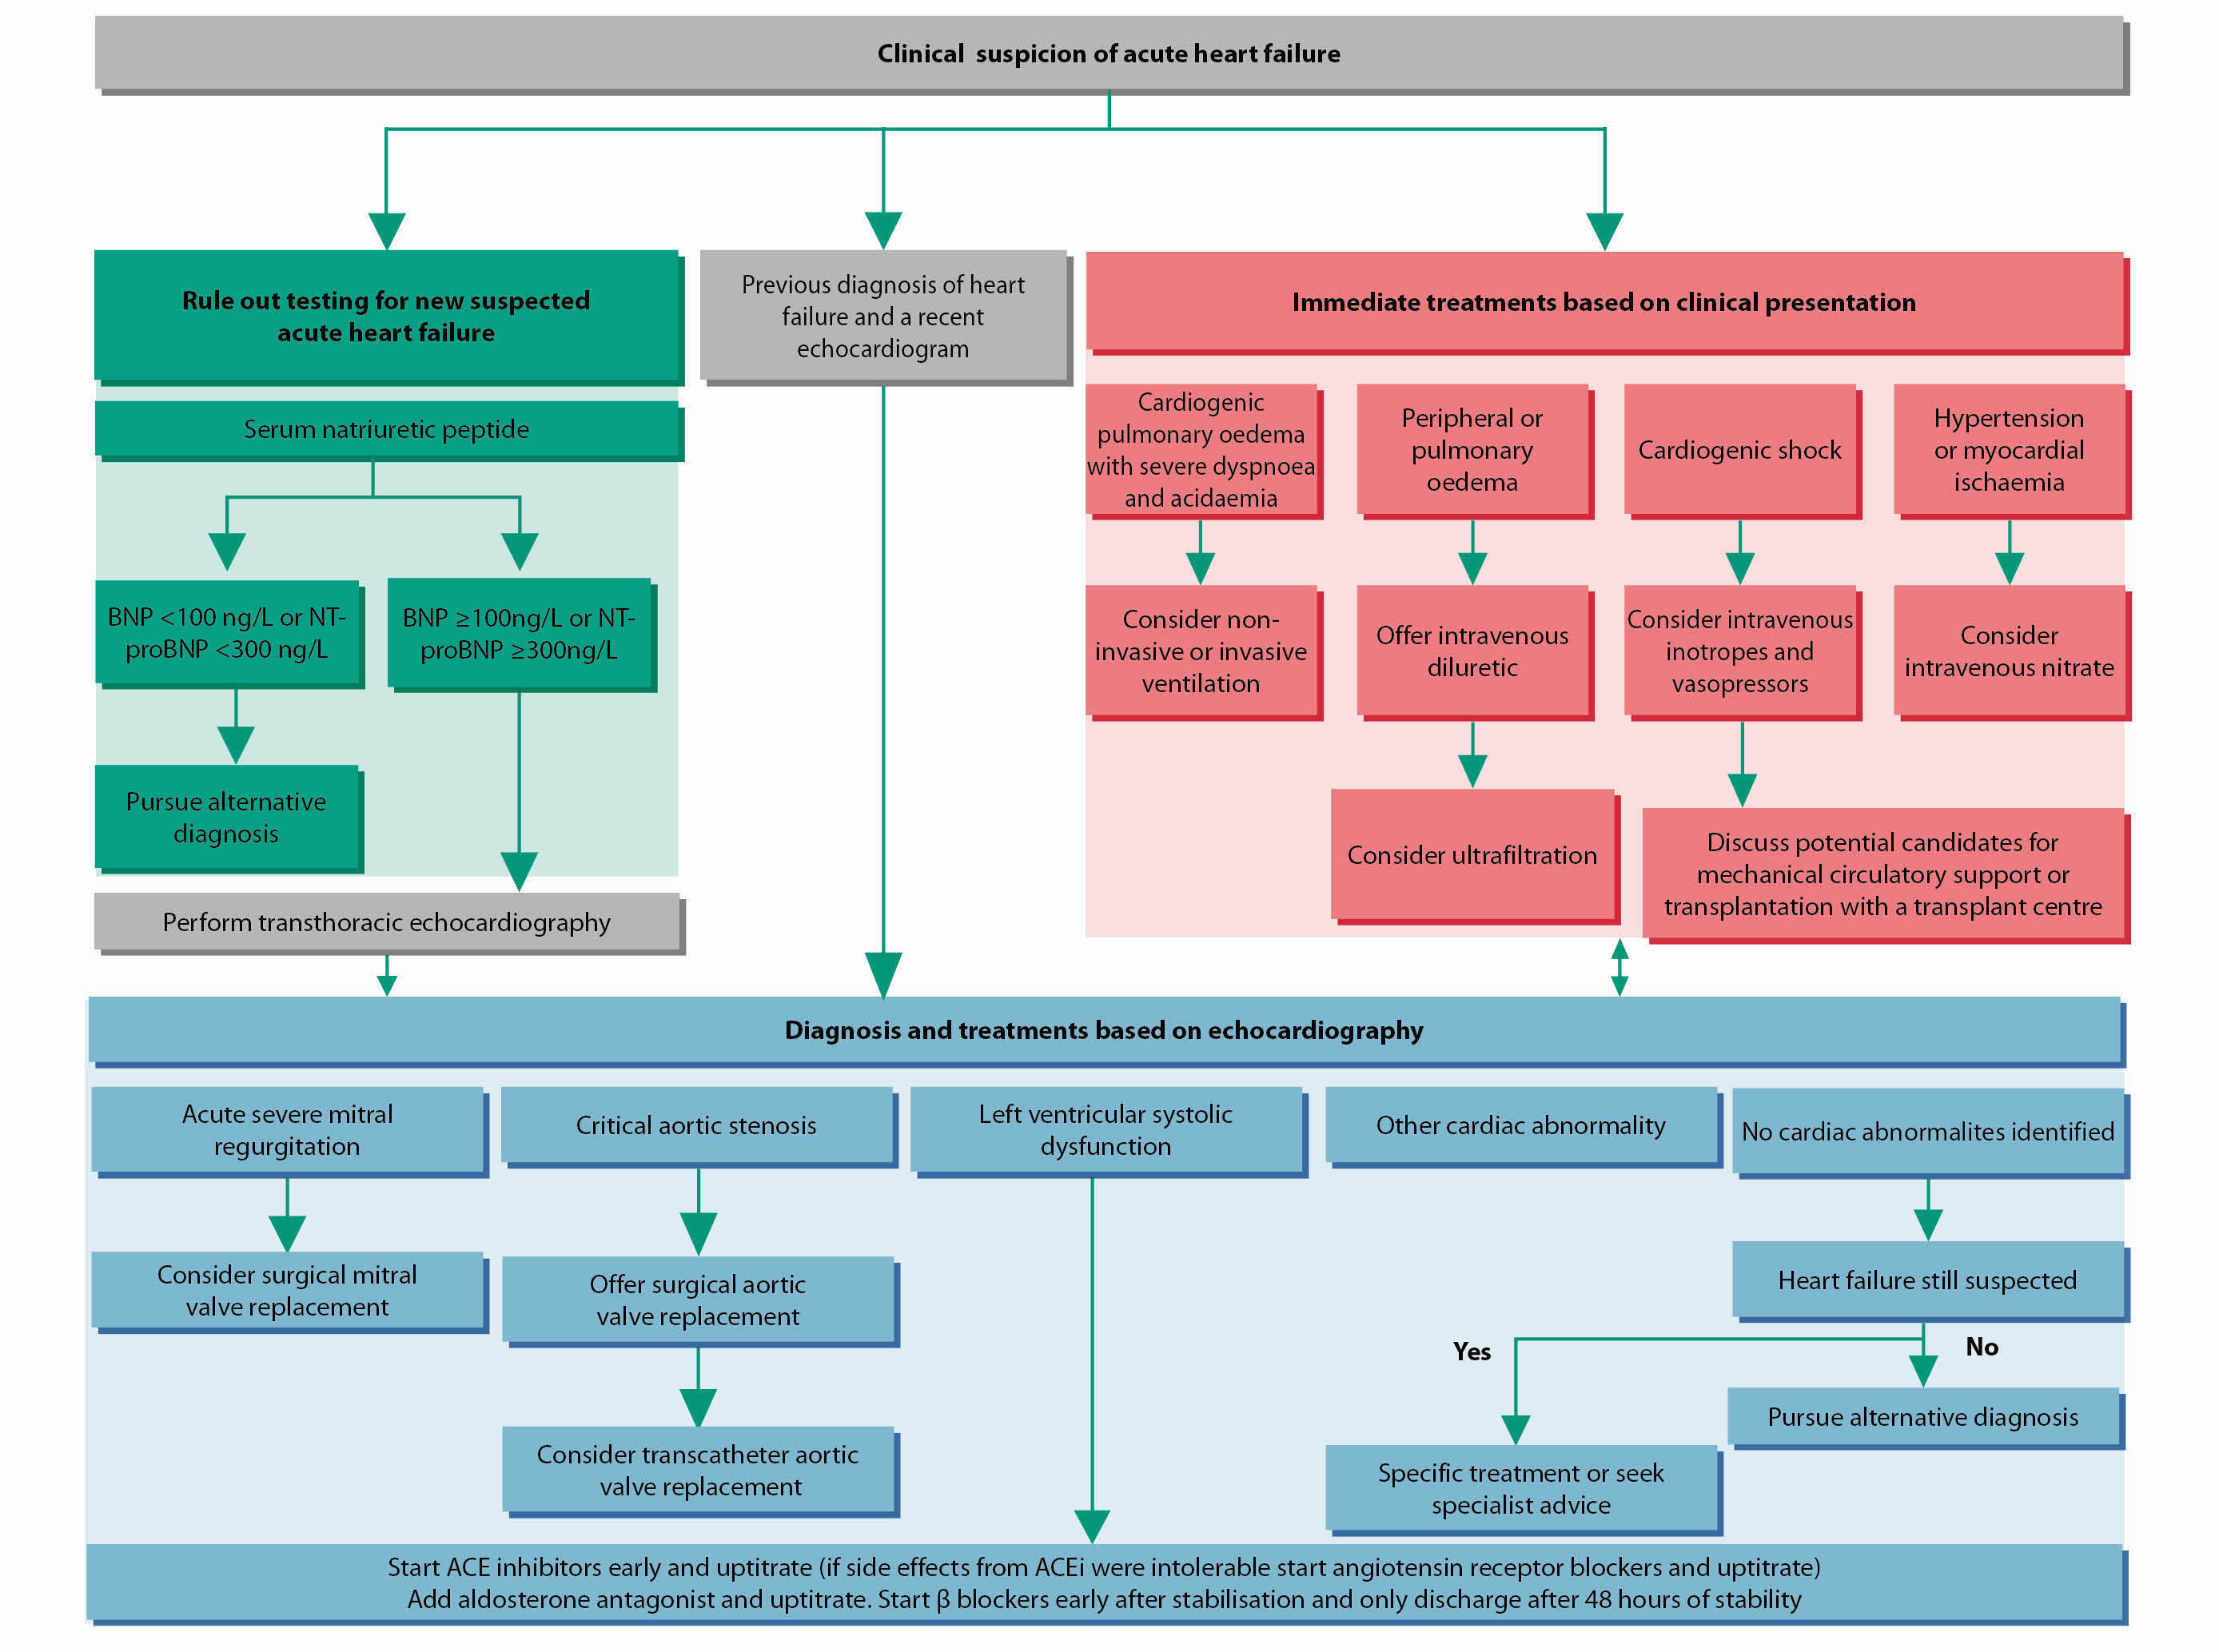 Diagnostic and treatment algorithm for clinical suspicion of acute heart failure